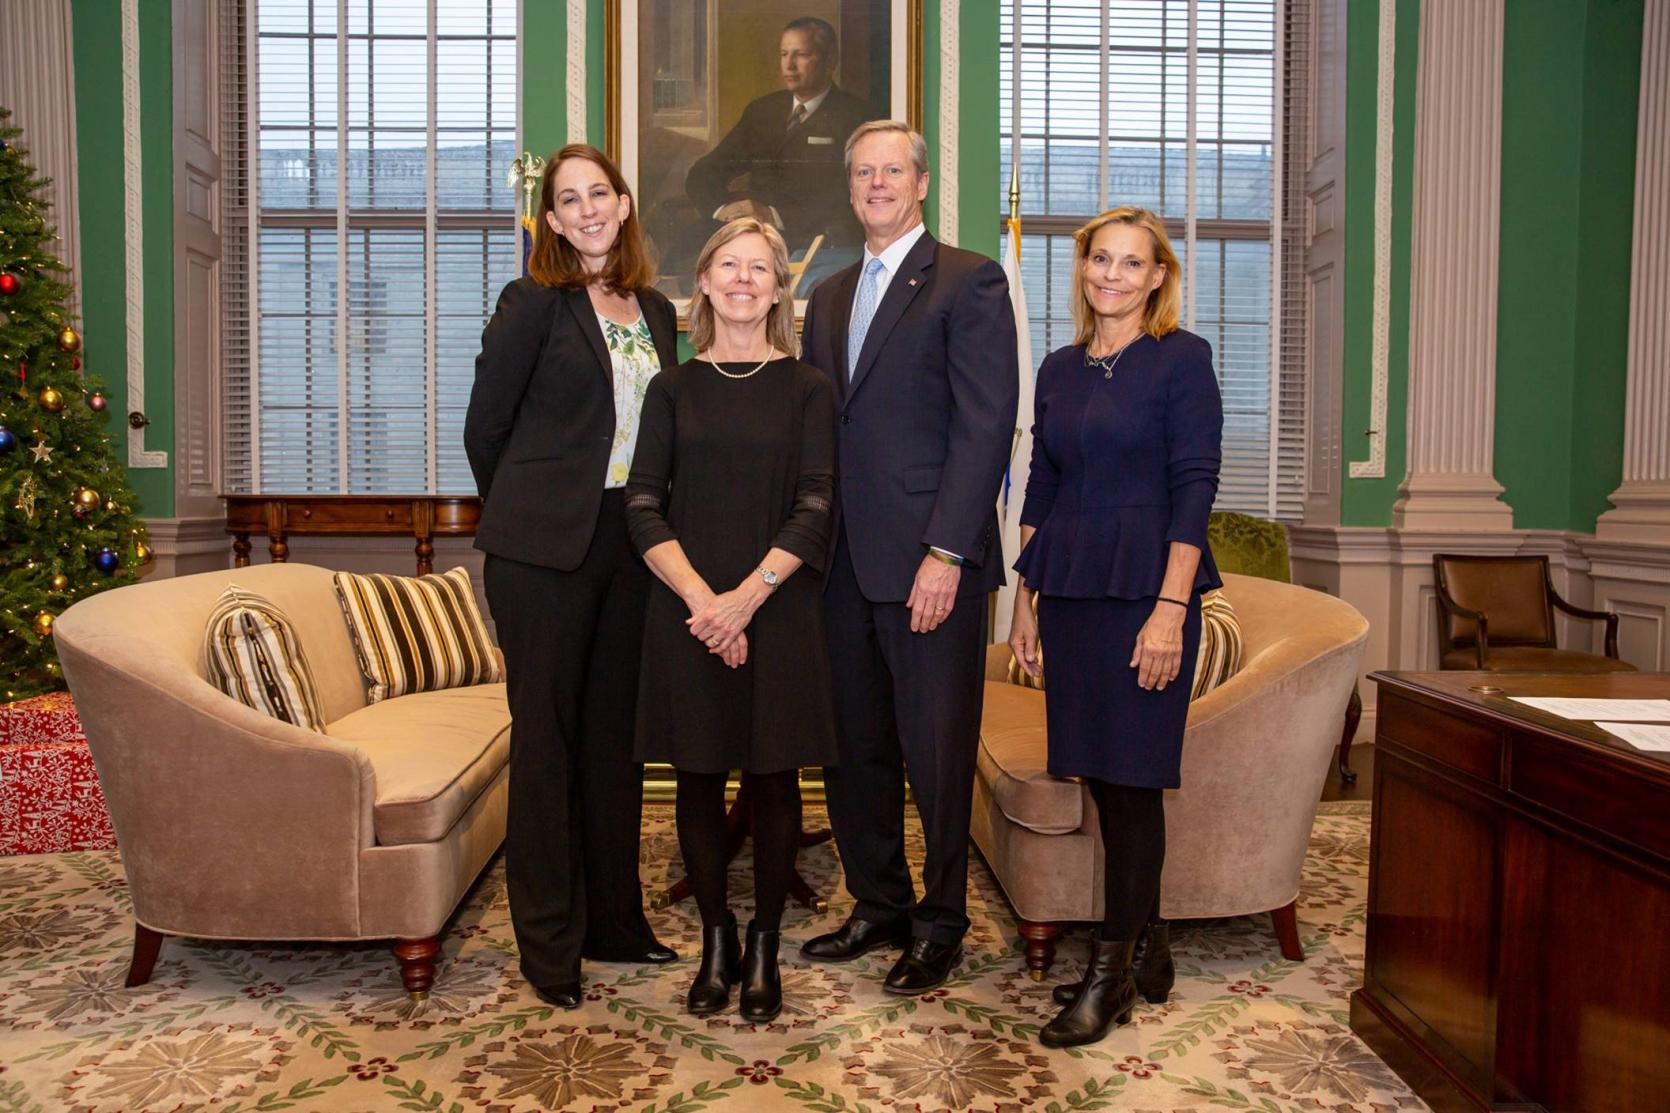 Governor Baker held a swearing in ceremony for new members of the Board of Higher Education on Monday afternoon. Pictured from left to right, Ann Christensen, Patty Zillian Eppinger, Governor Charlie Baker, and Judy Pagliuca.